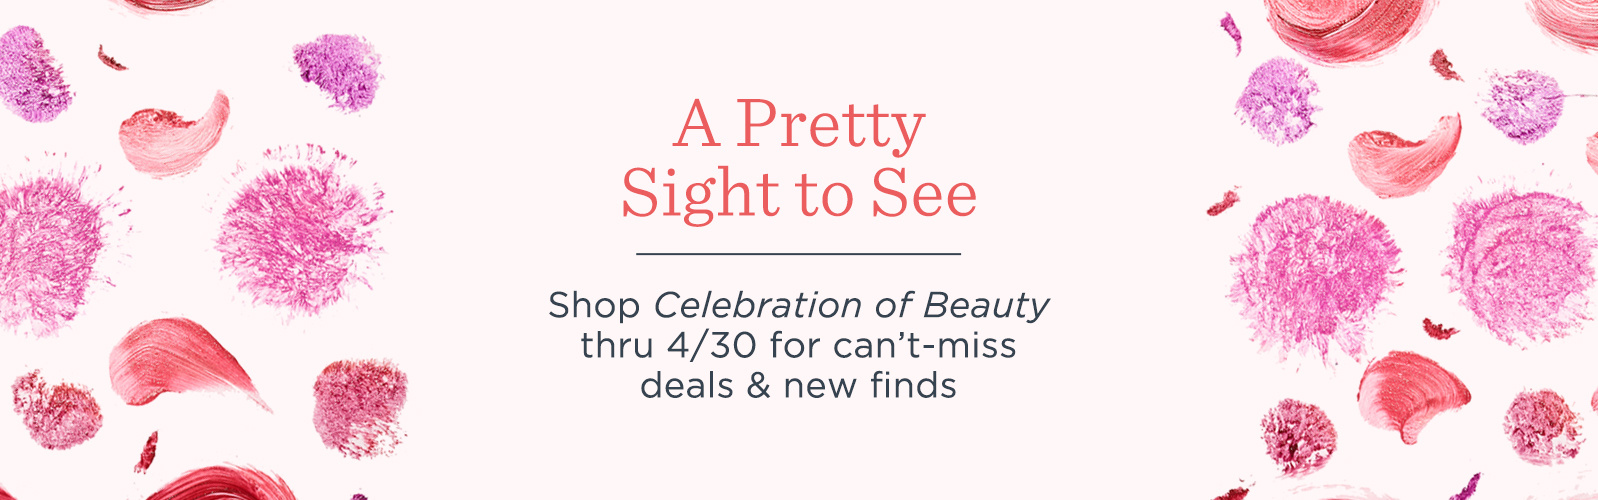 A Pretty Sight to See.  Shop Celebration of Beauty thru 4/30 for can't-miss deals & new finds